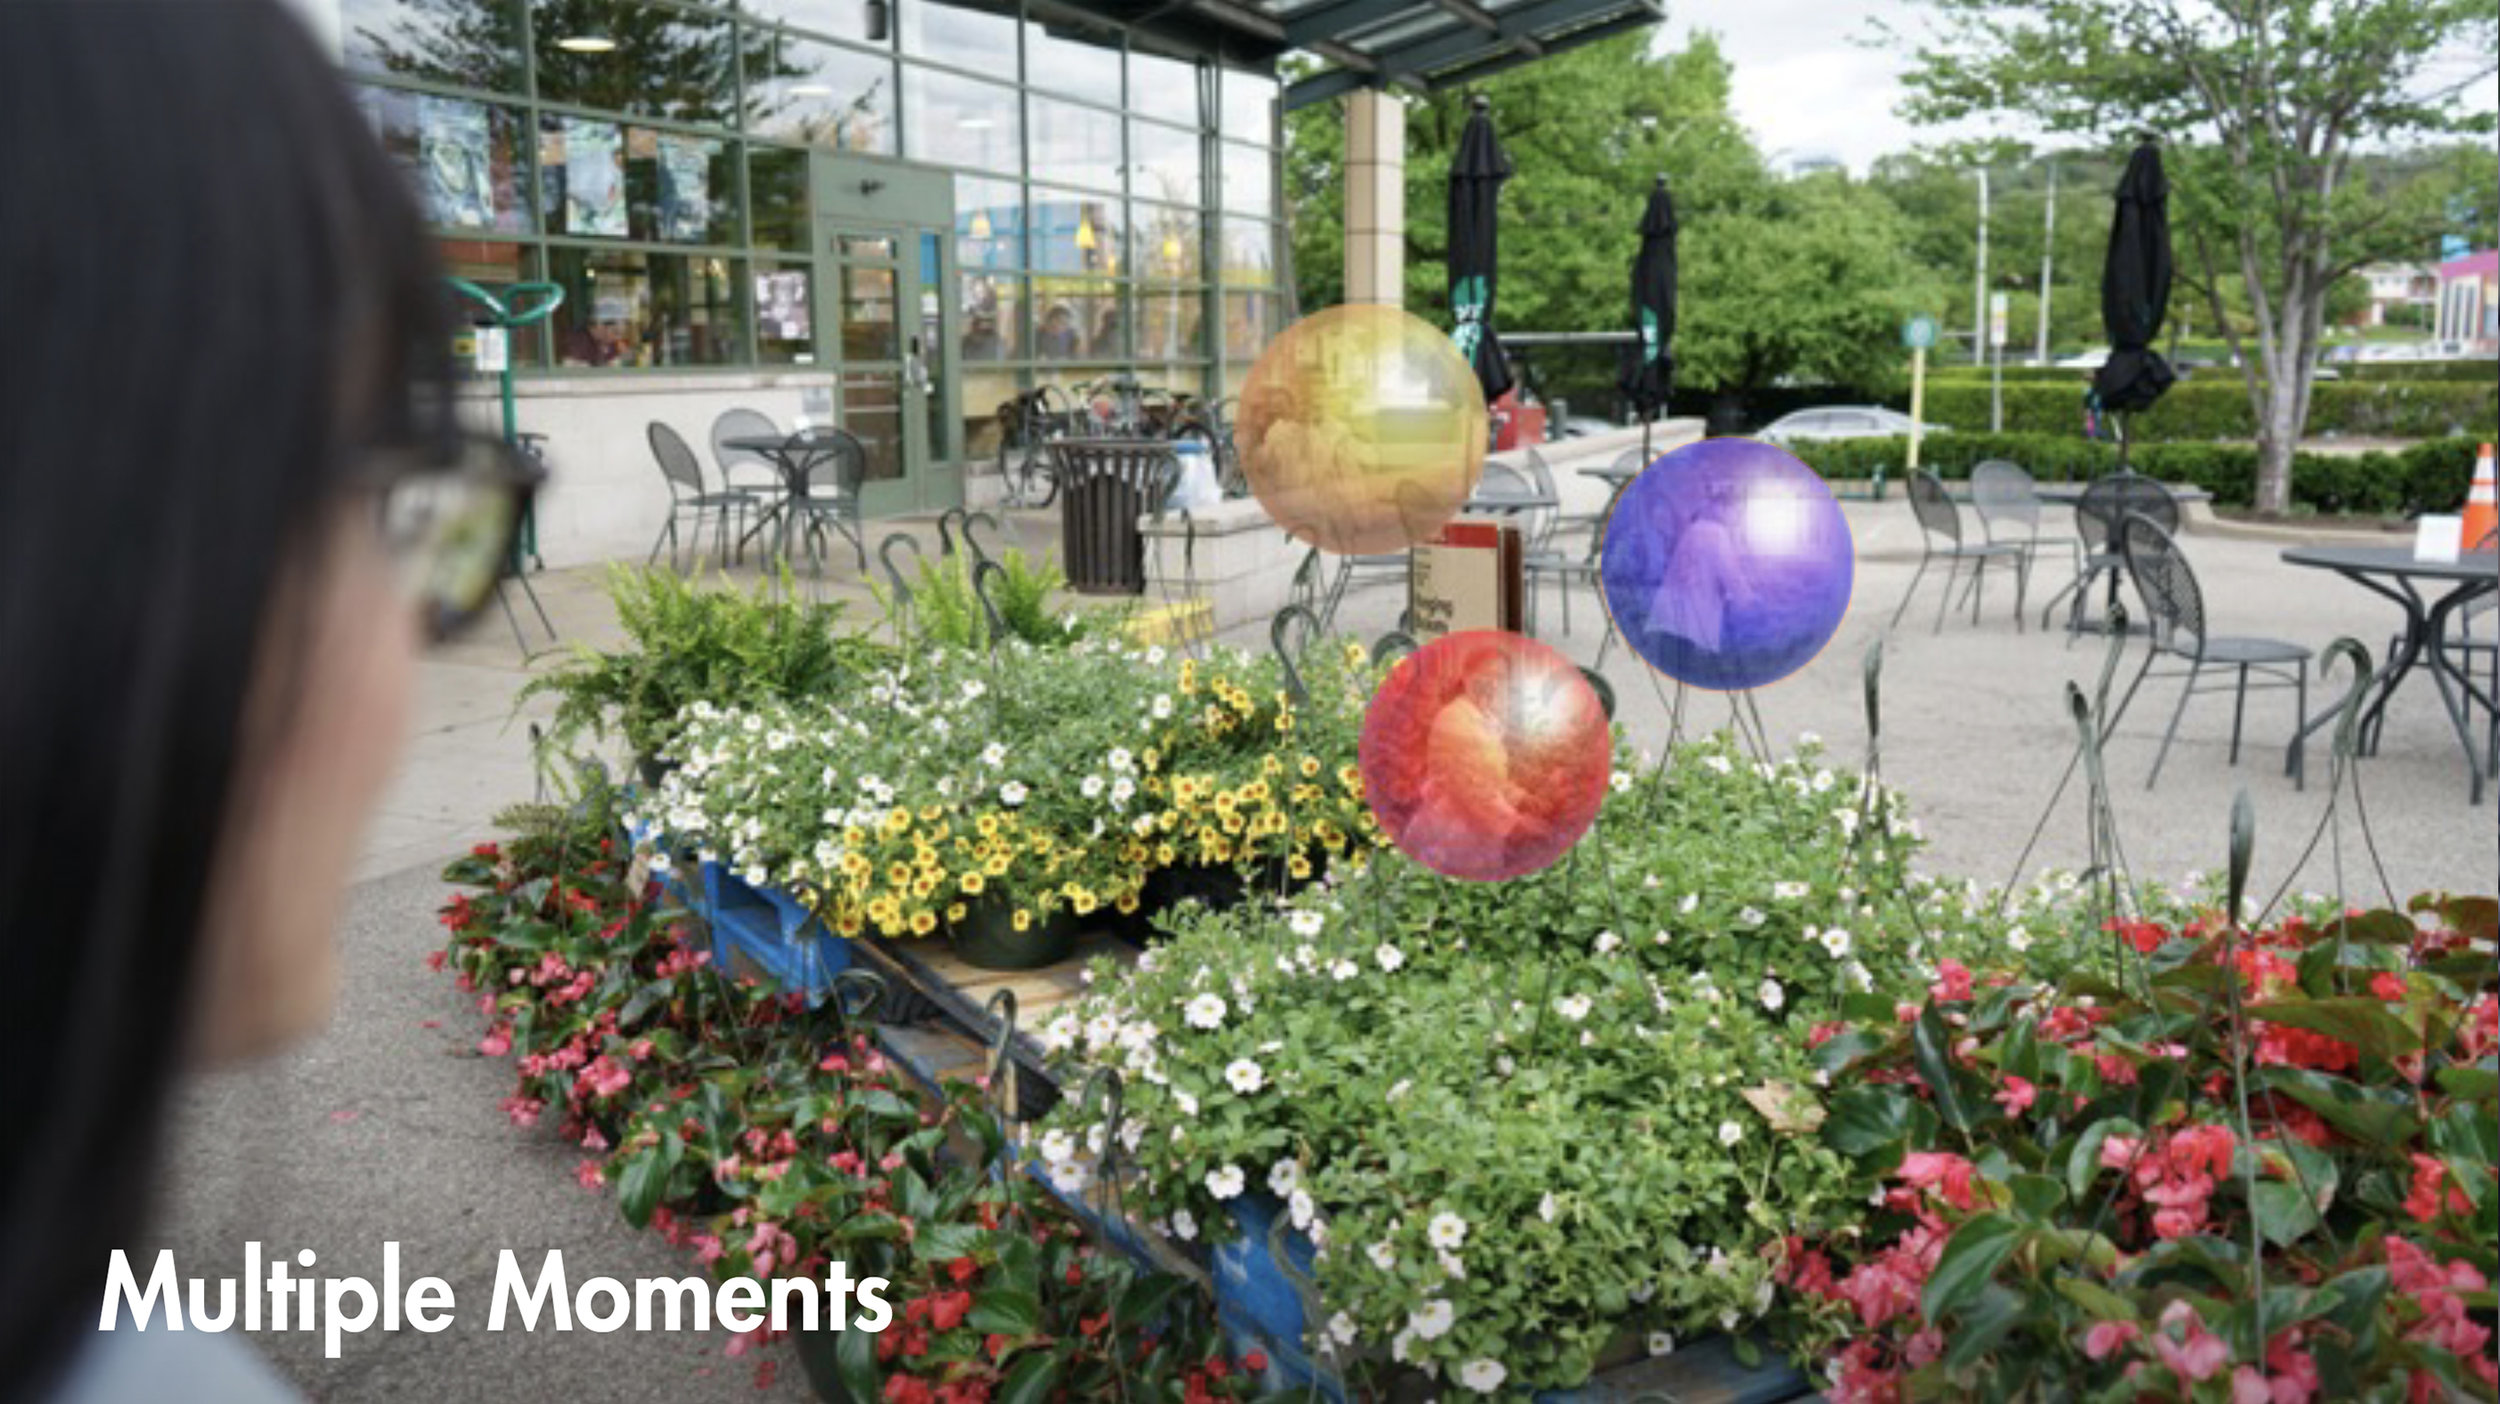 MULTIPLE MOMENTS - If user captures multiple moments at the same location in different days,Kioku will display the older one first, then newer ones once it is consumed. If multiple members capture at the same location, Kioku will differentiate the capturers by color.